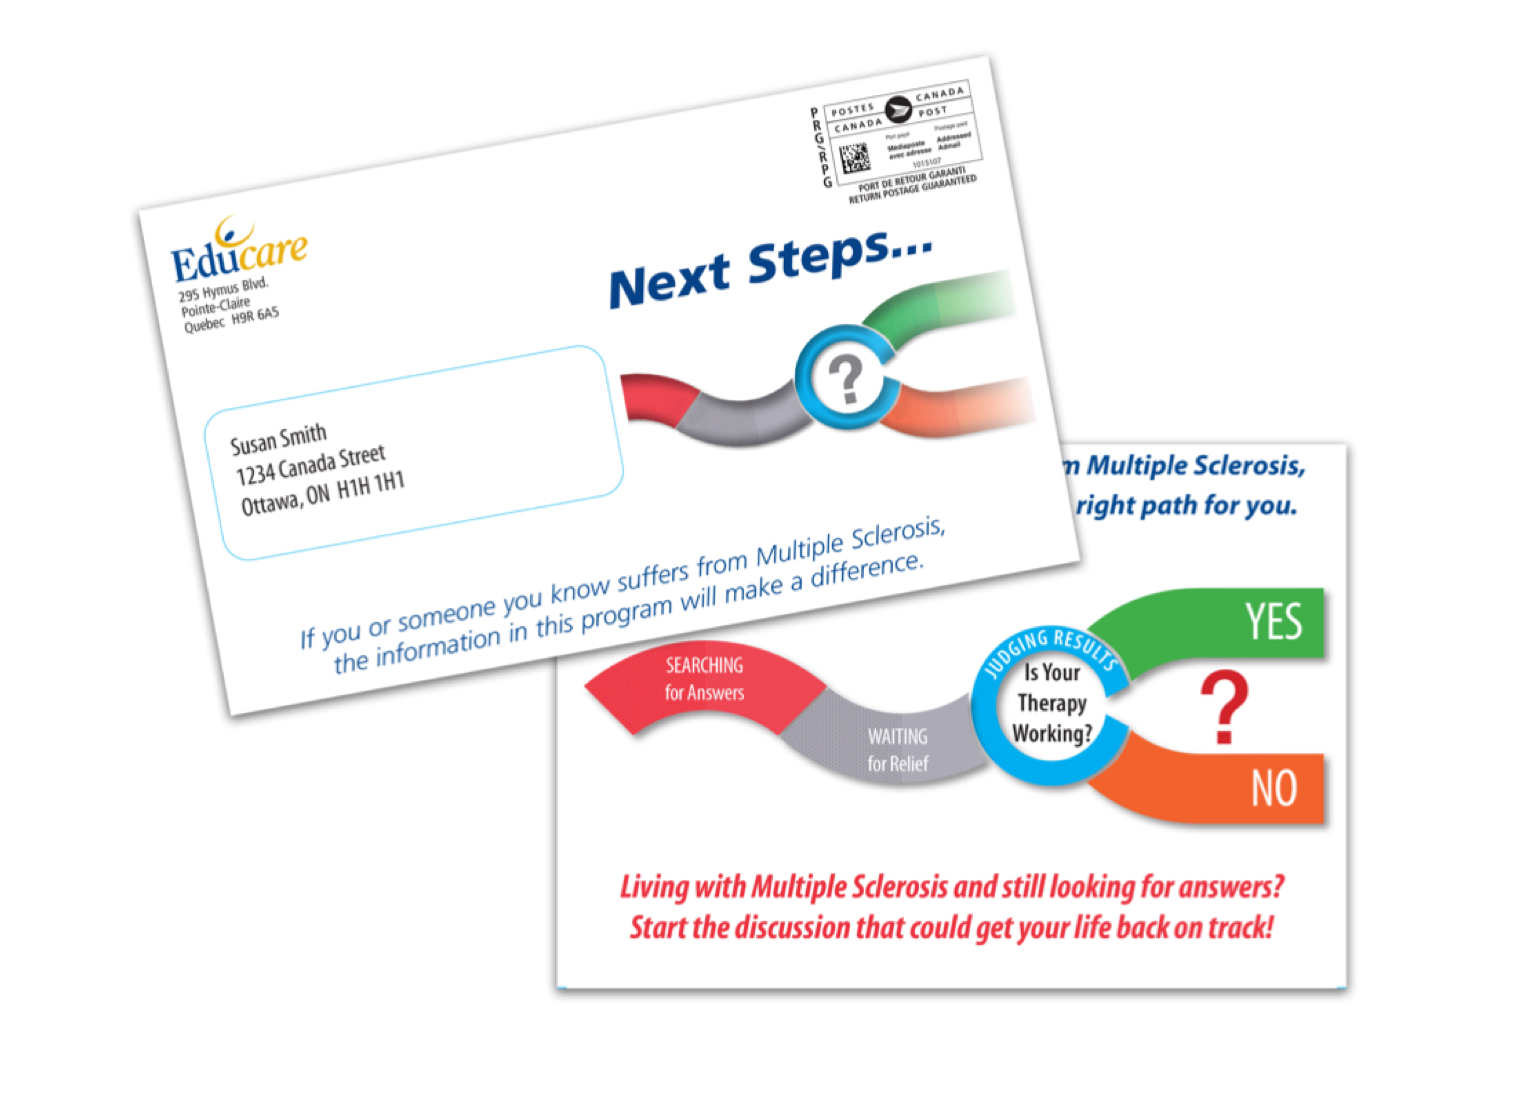 An example of an outer envelope and letter design from Educare.